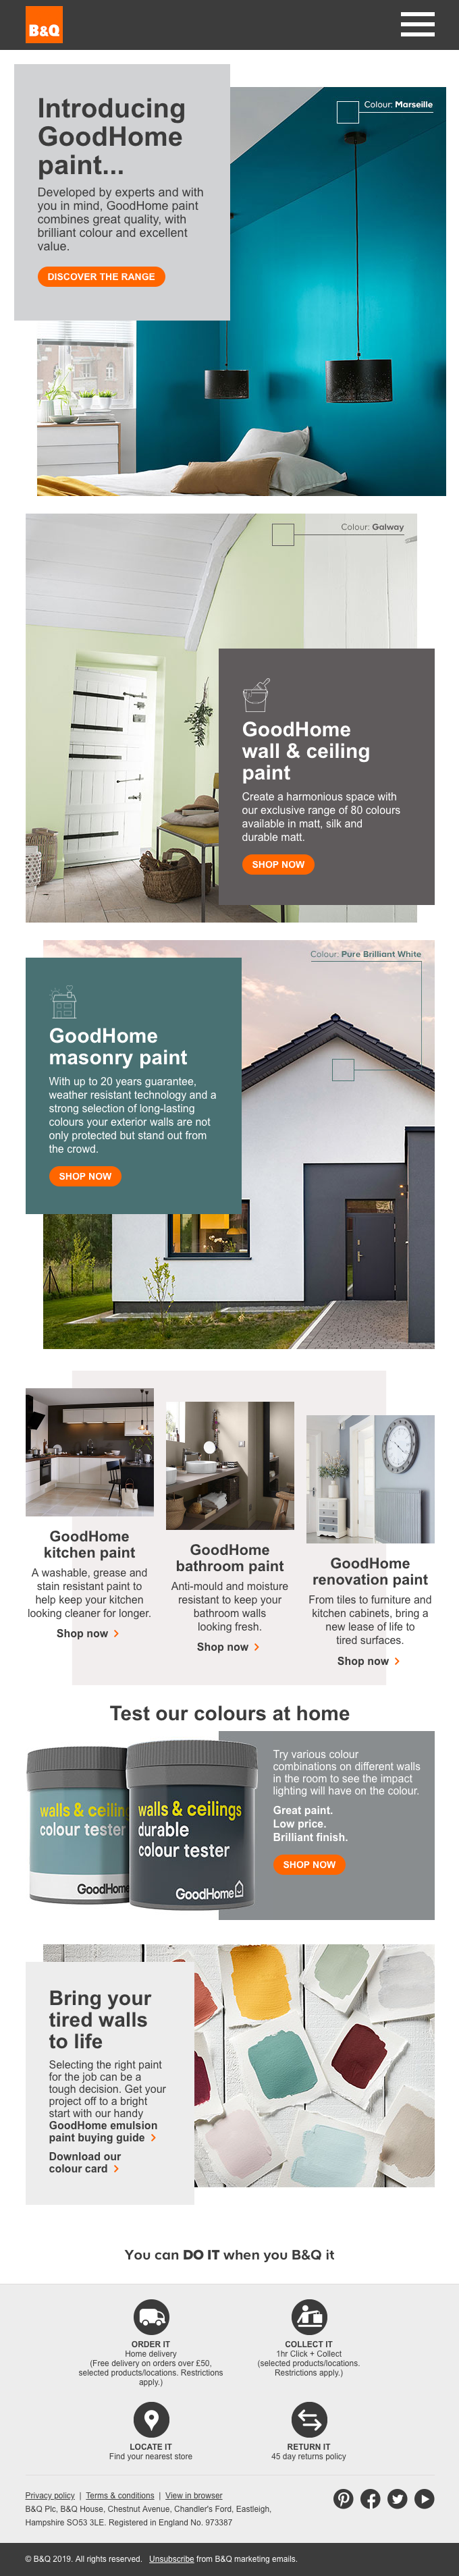 Discover our brilliant new paint range